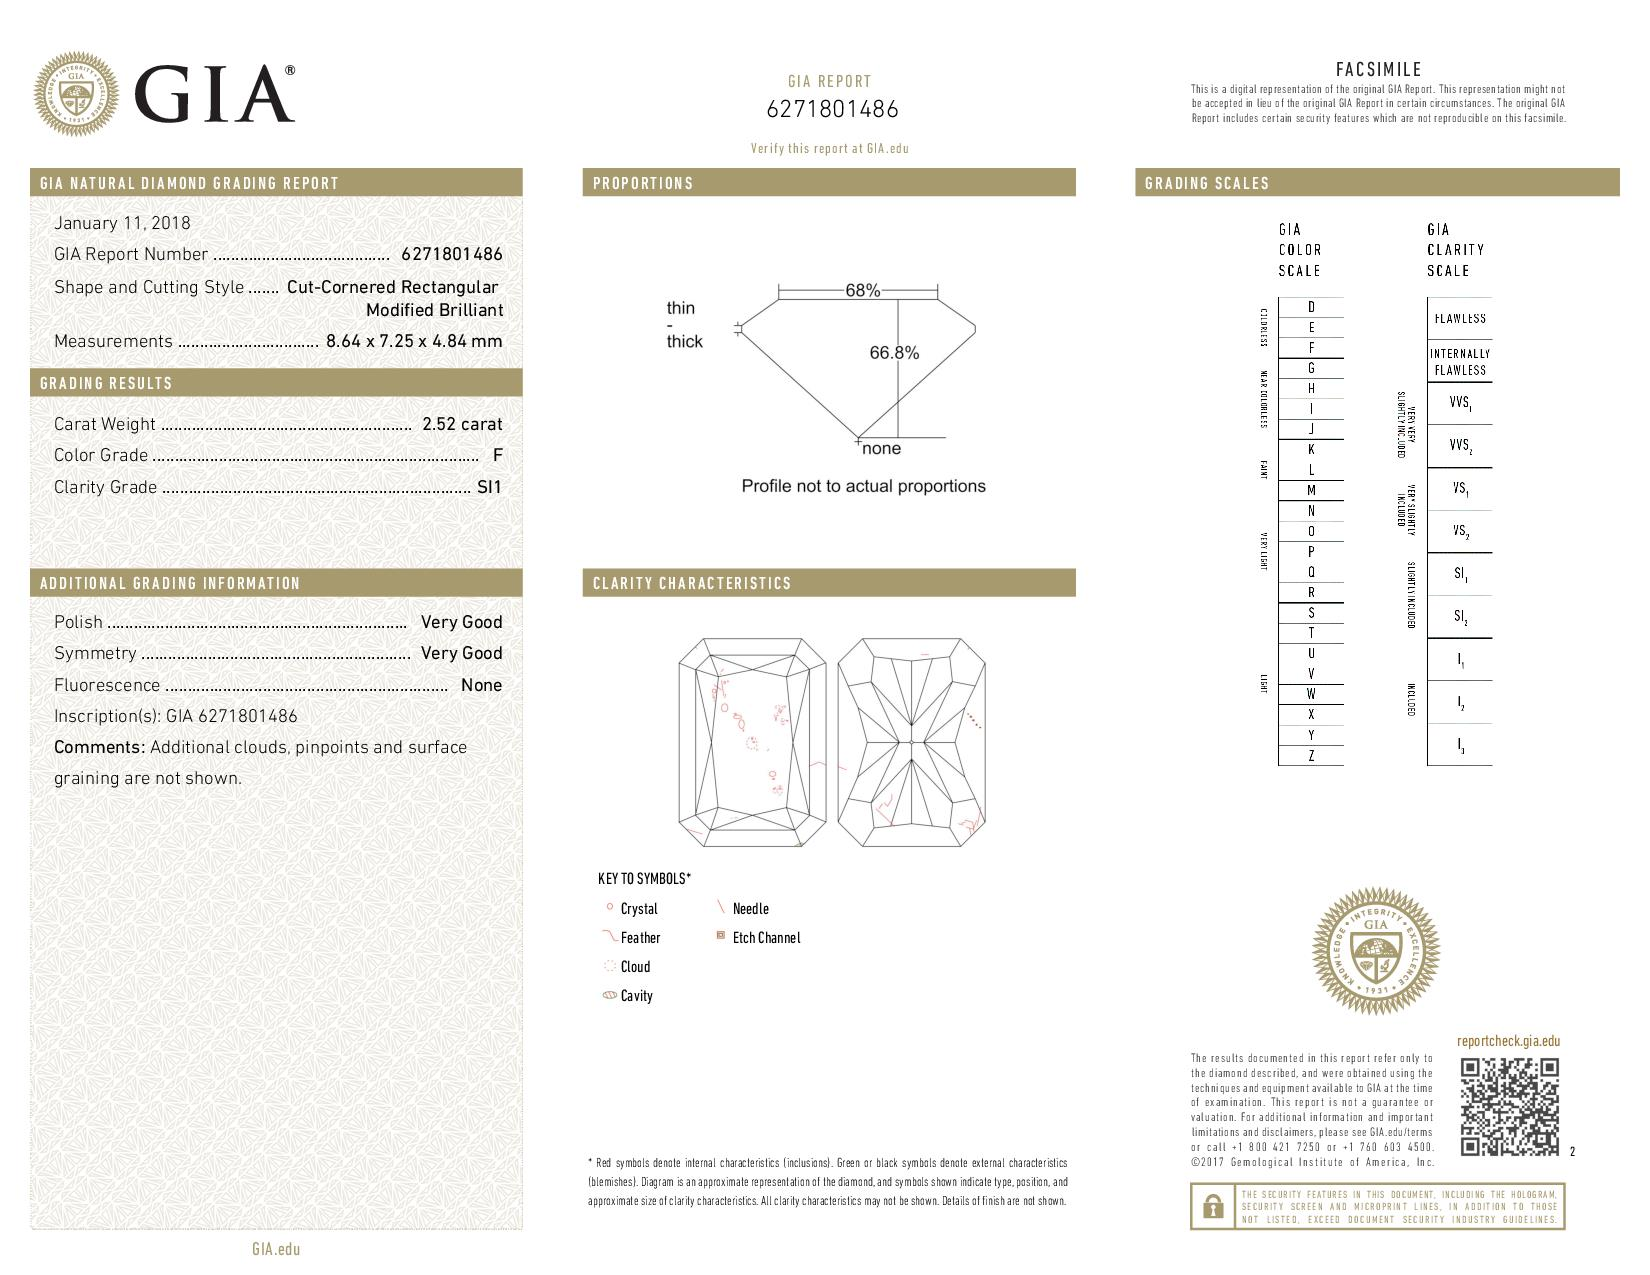 This is a 2.52 carat radiant shape, F color, SI1 clarity natural diamond accompanied by a GIA grading report.